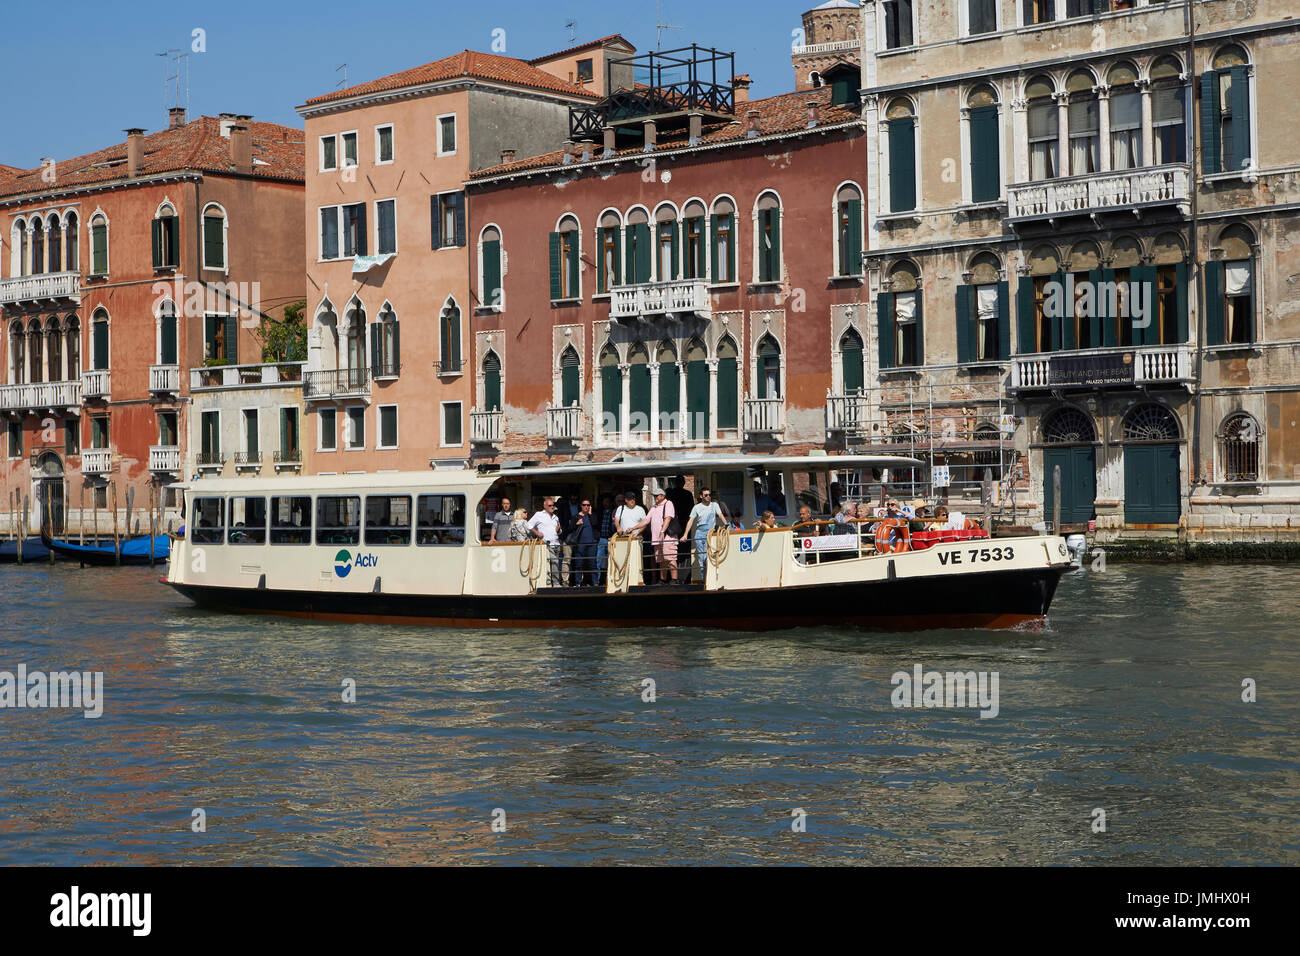 A view of a vaporetto on the Grand Canal, Venice. - Stock Image